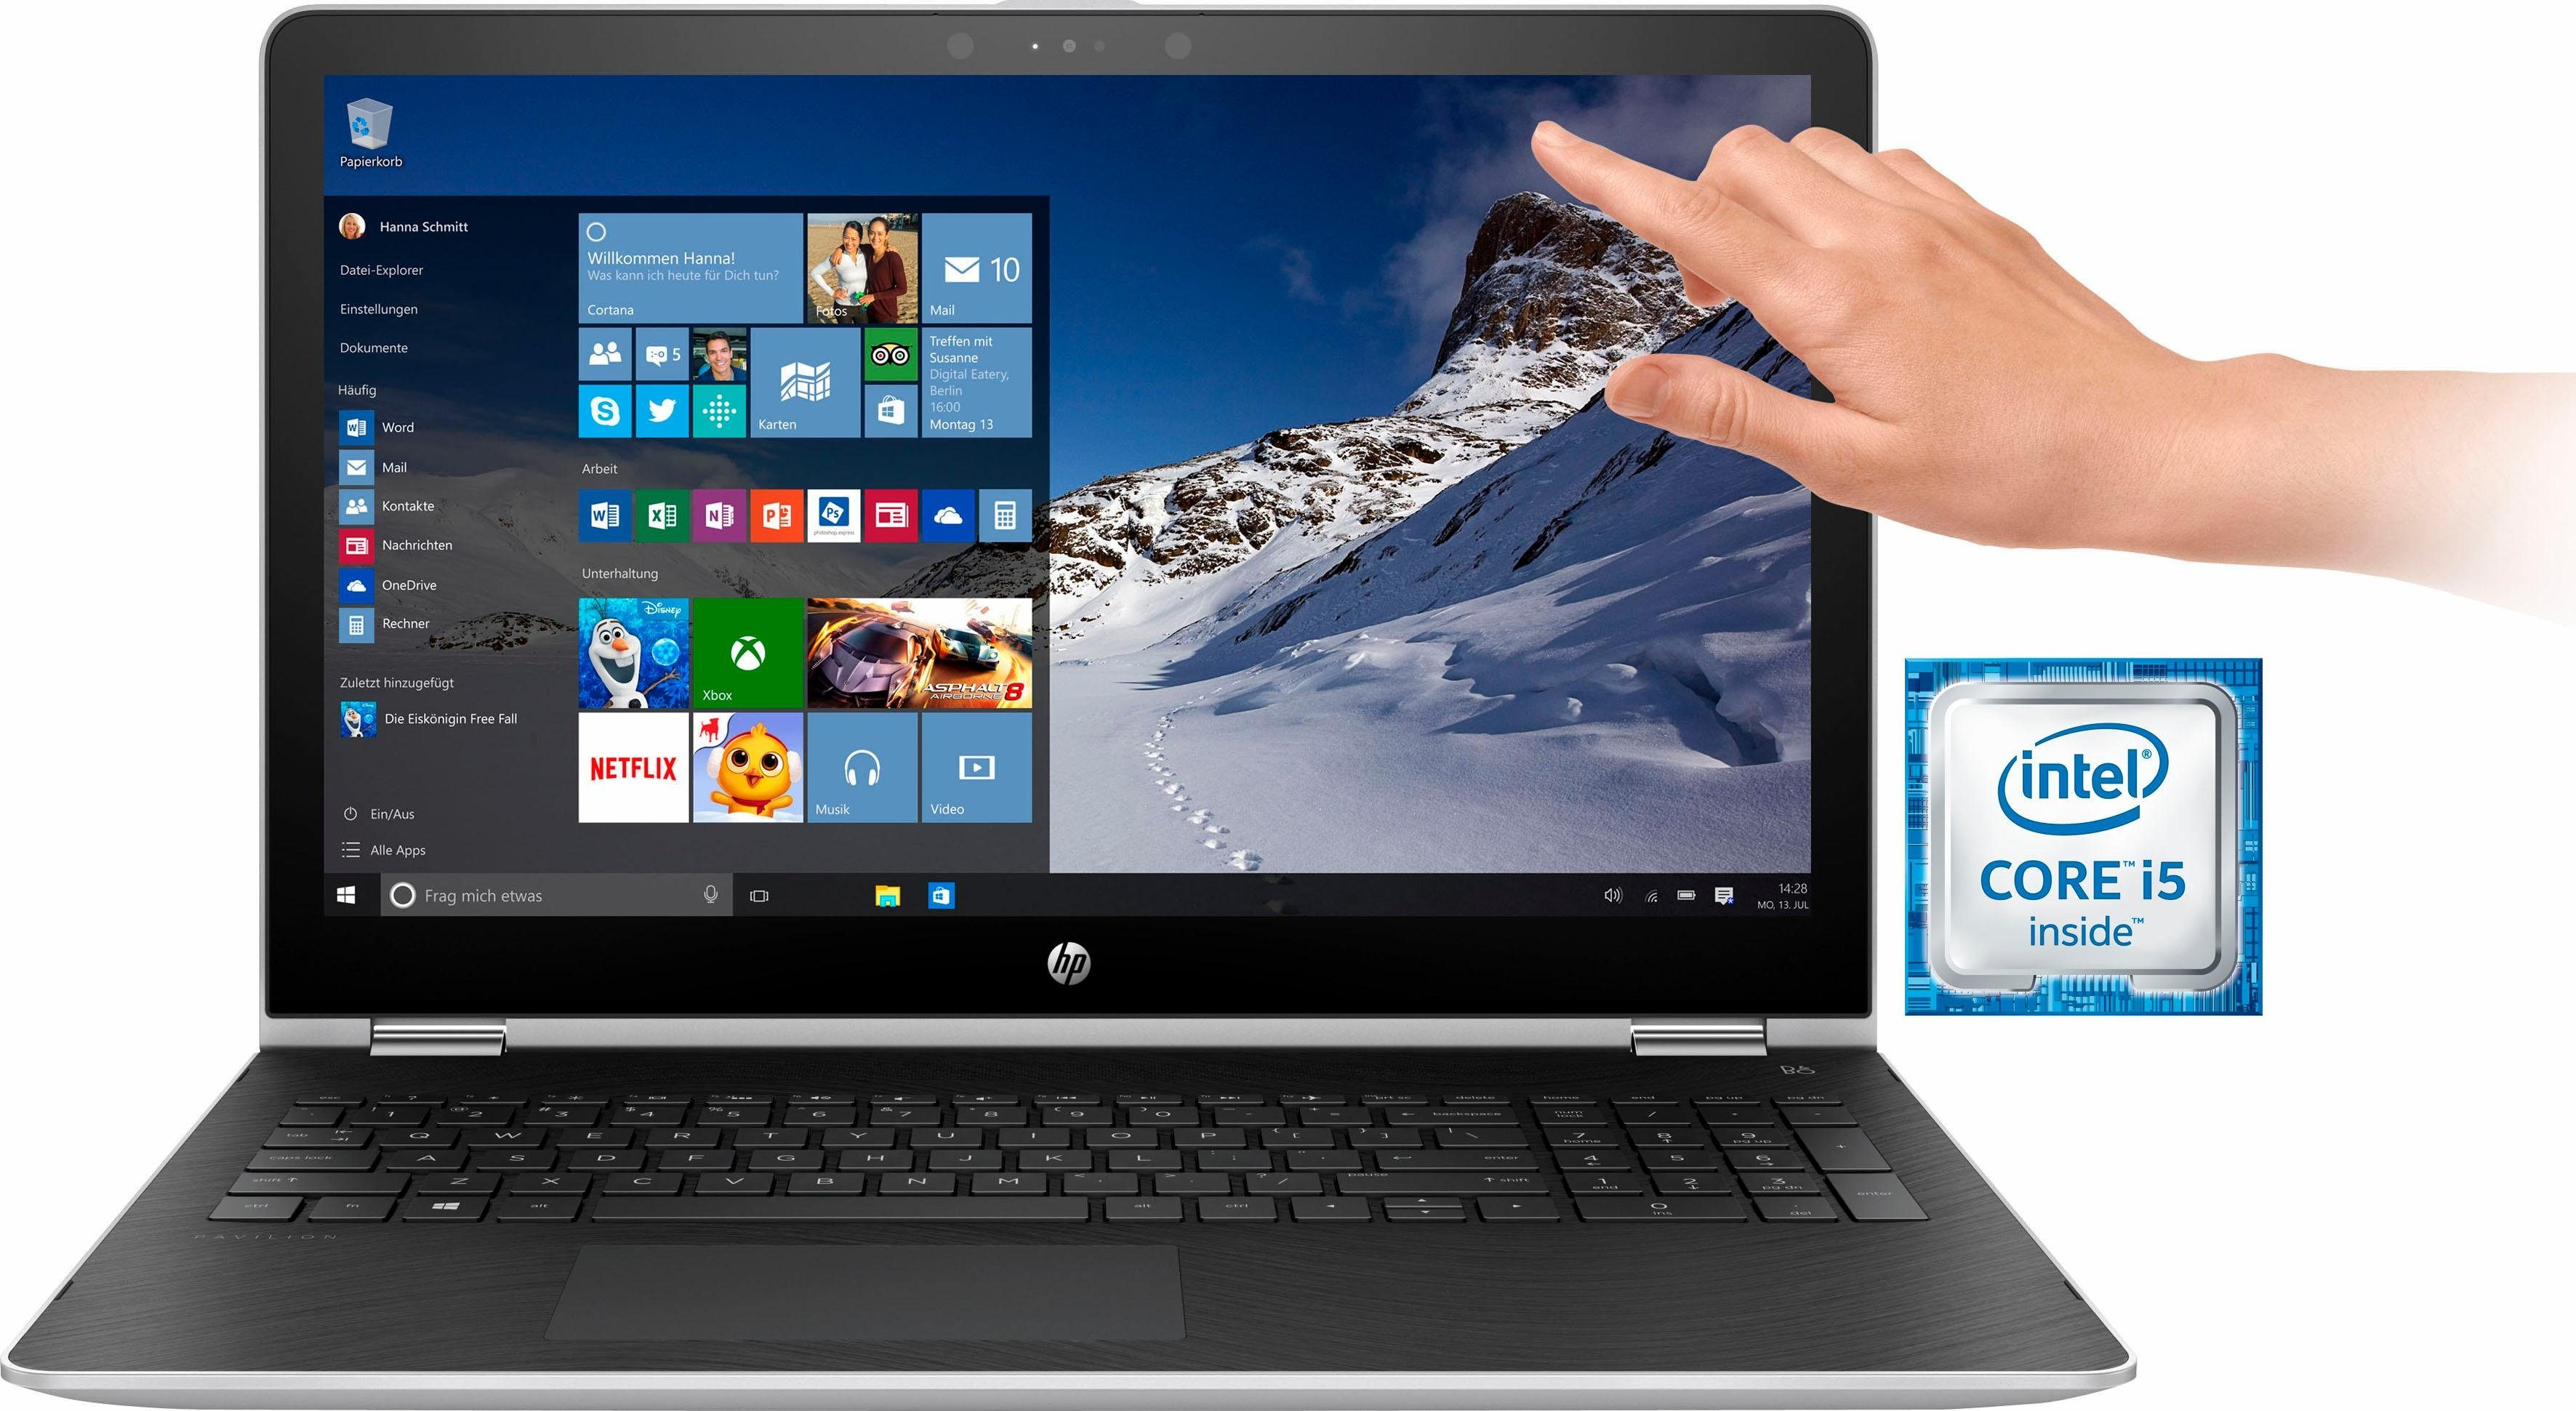 HP Pavilion 15 x360, 15-br014ng Notebook, Intel® Core™ i5, 39,6 cm (15,6 Zoll), 1000 GB Speicher